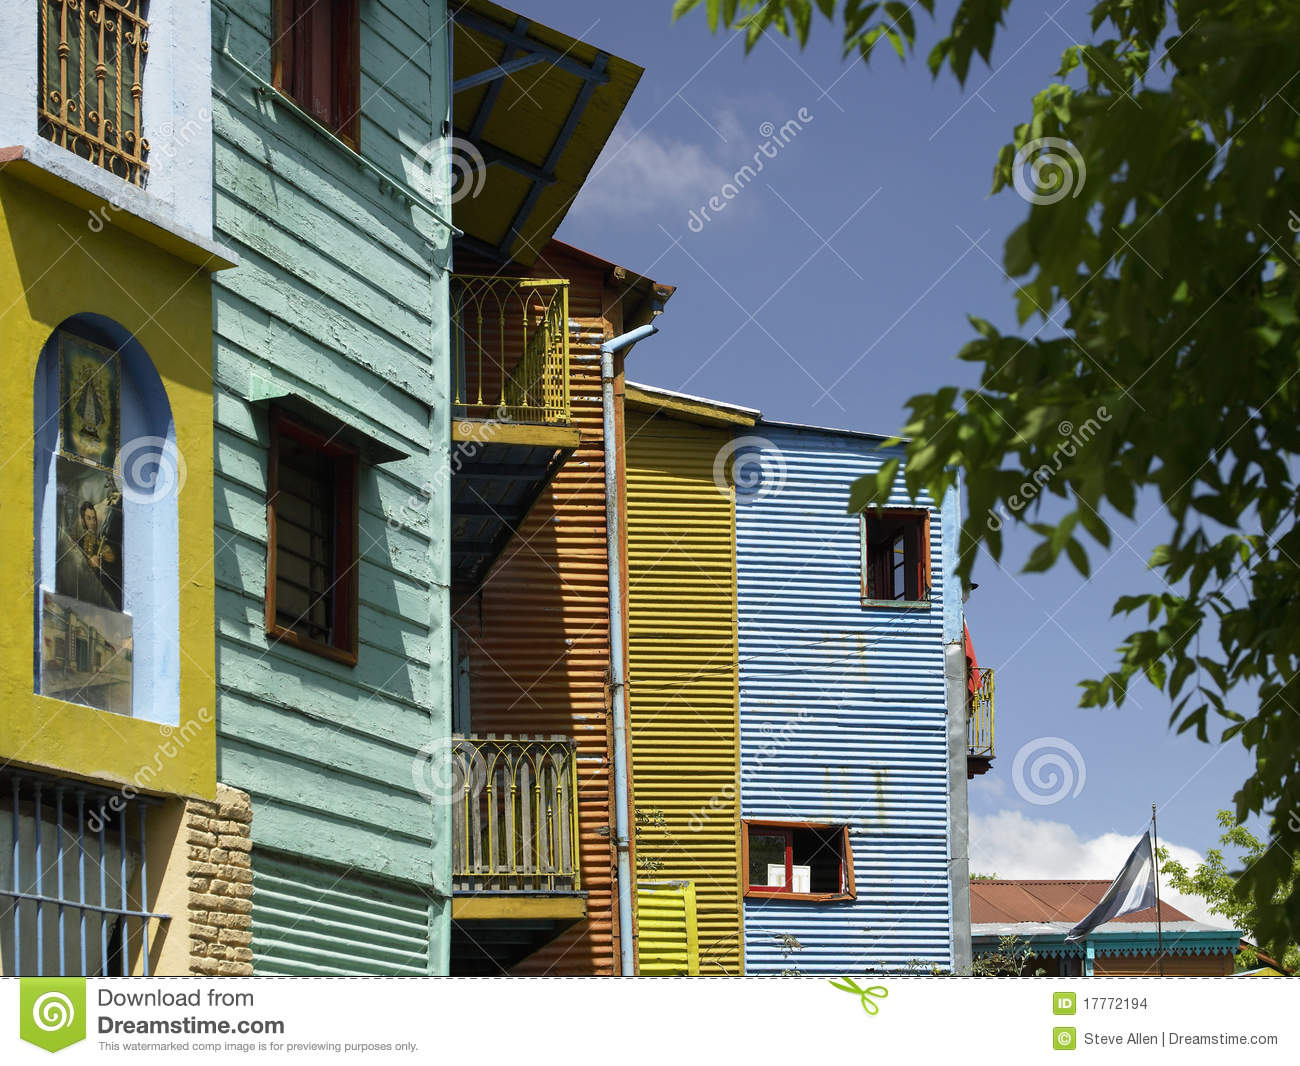 La Boca district of Buenos Aires - Argentina